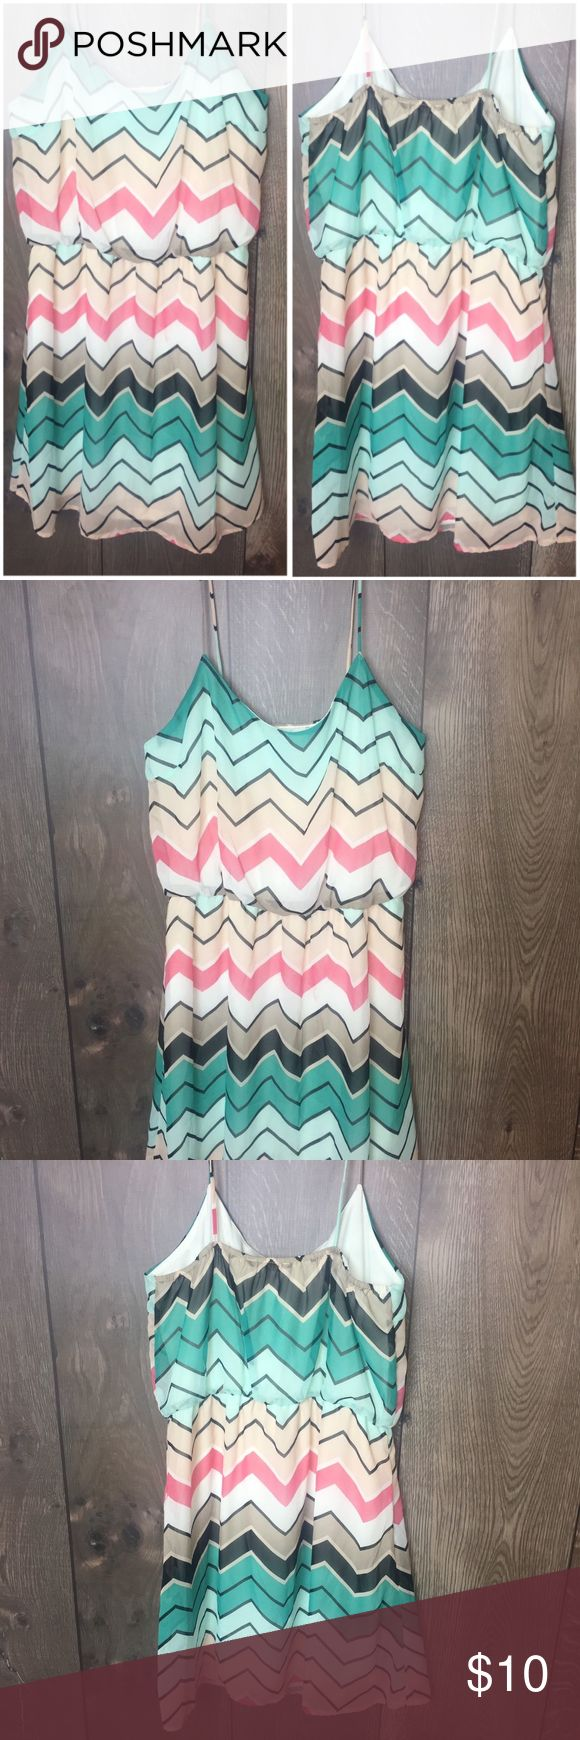 Charlotte Russe Chevron Print Sz M Strapless Dress Charlotte Russe Chevron Print Sz M Strapless Dress | K1 Gently used  See photos for details Charlotte Russe Dresses Mini